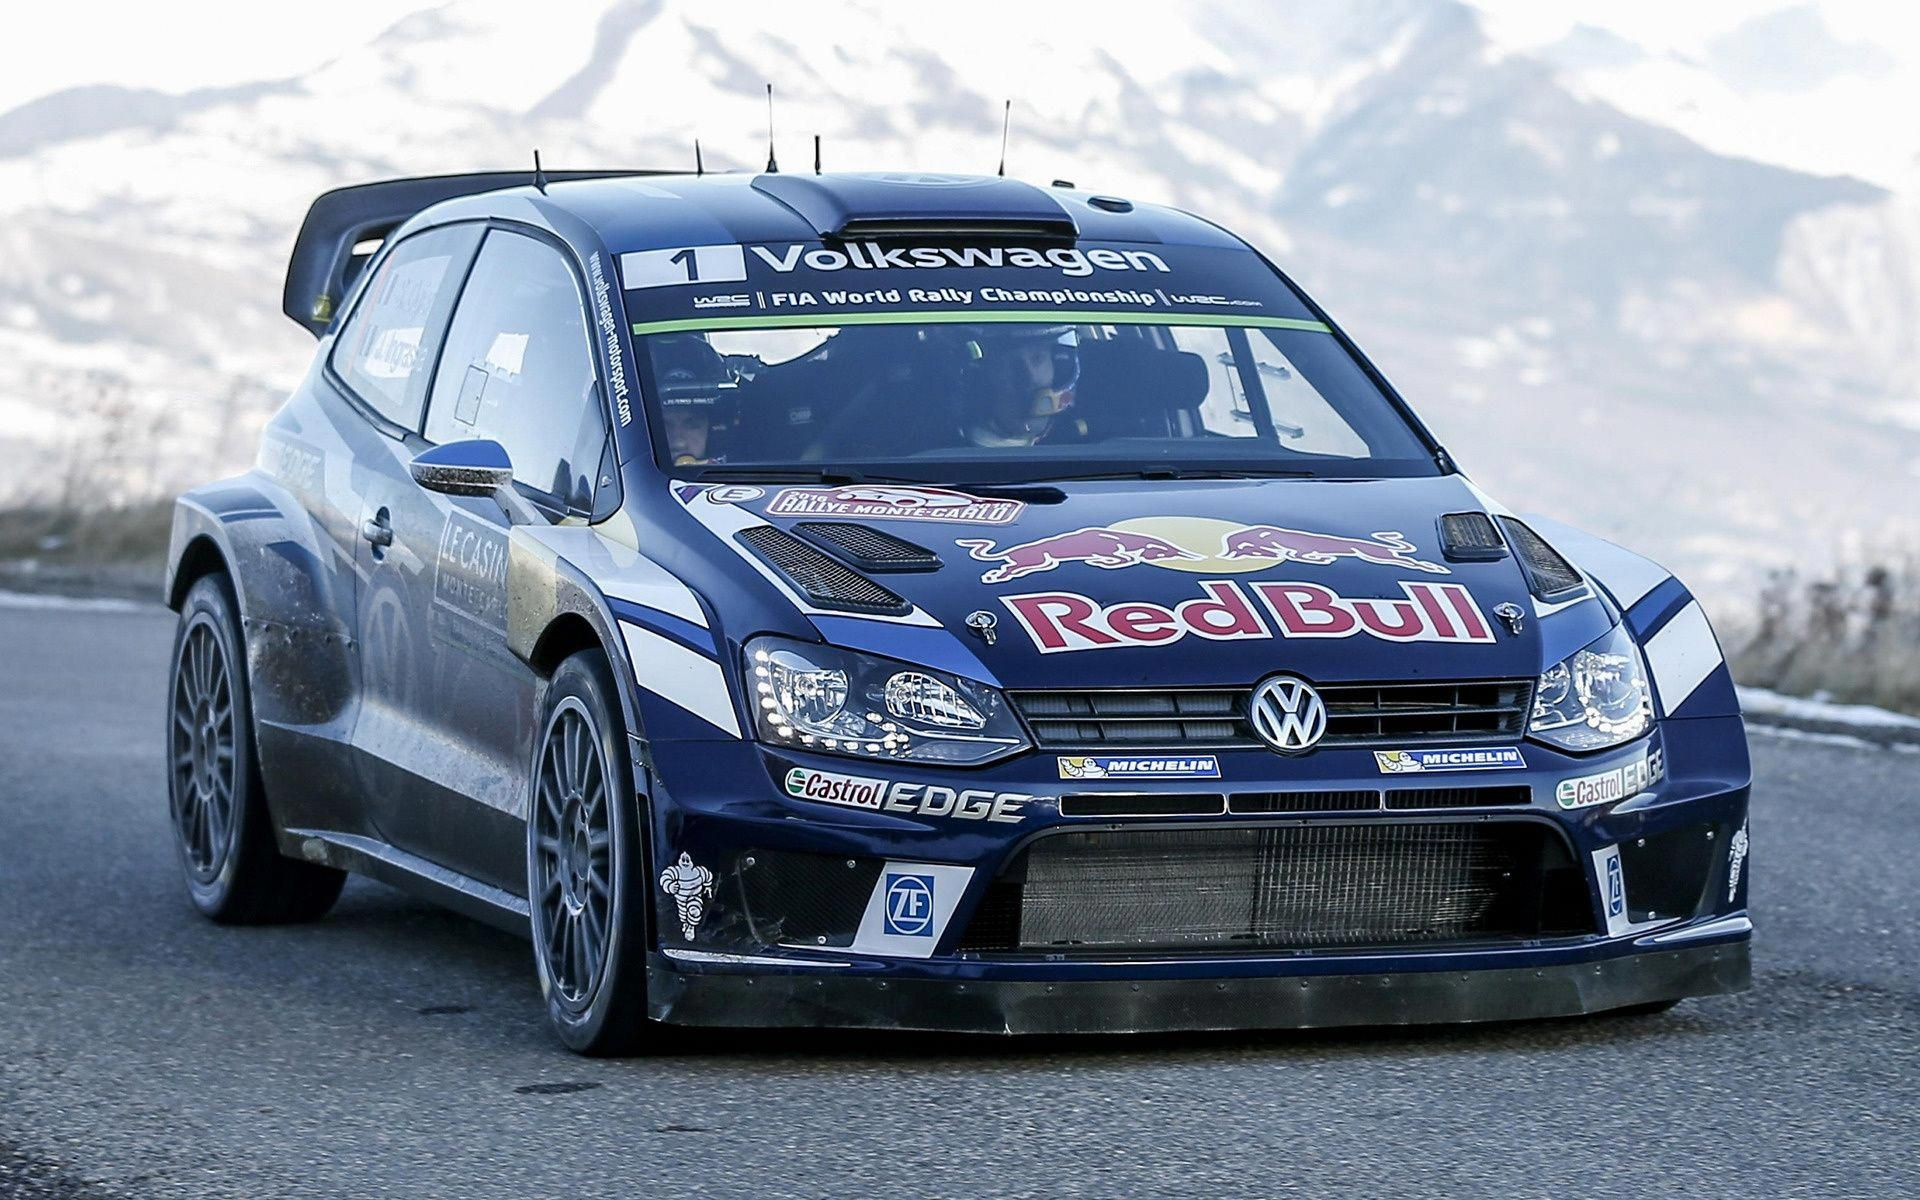 Volkswagen Polo R Wrc Wallpapers And Hd Images Car Pixel Vwpolo Volkswagen Polo Volkswagen Vw Polo